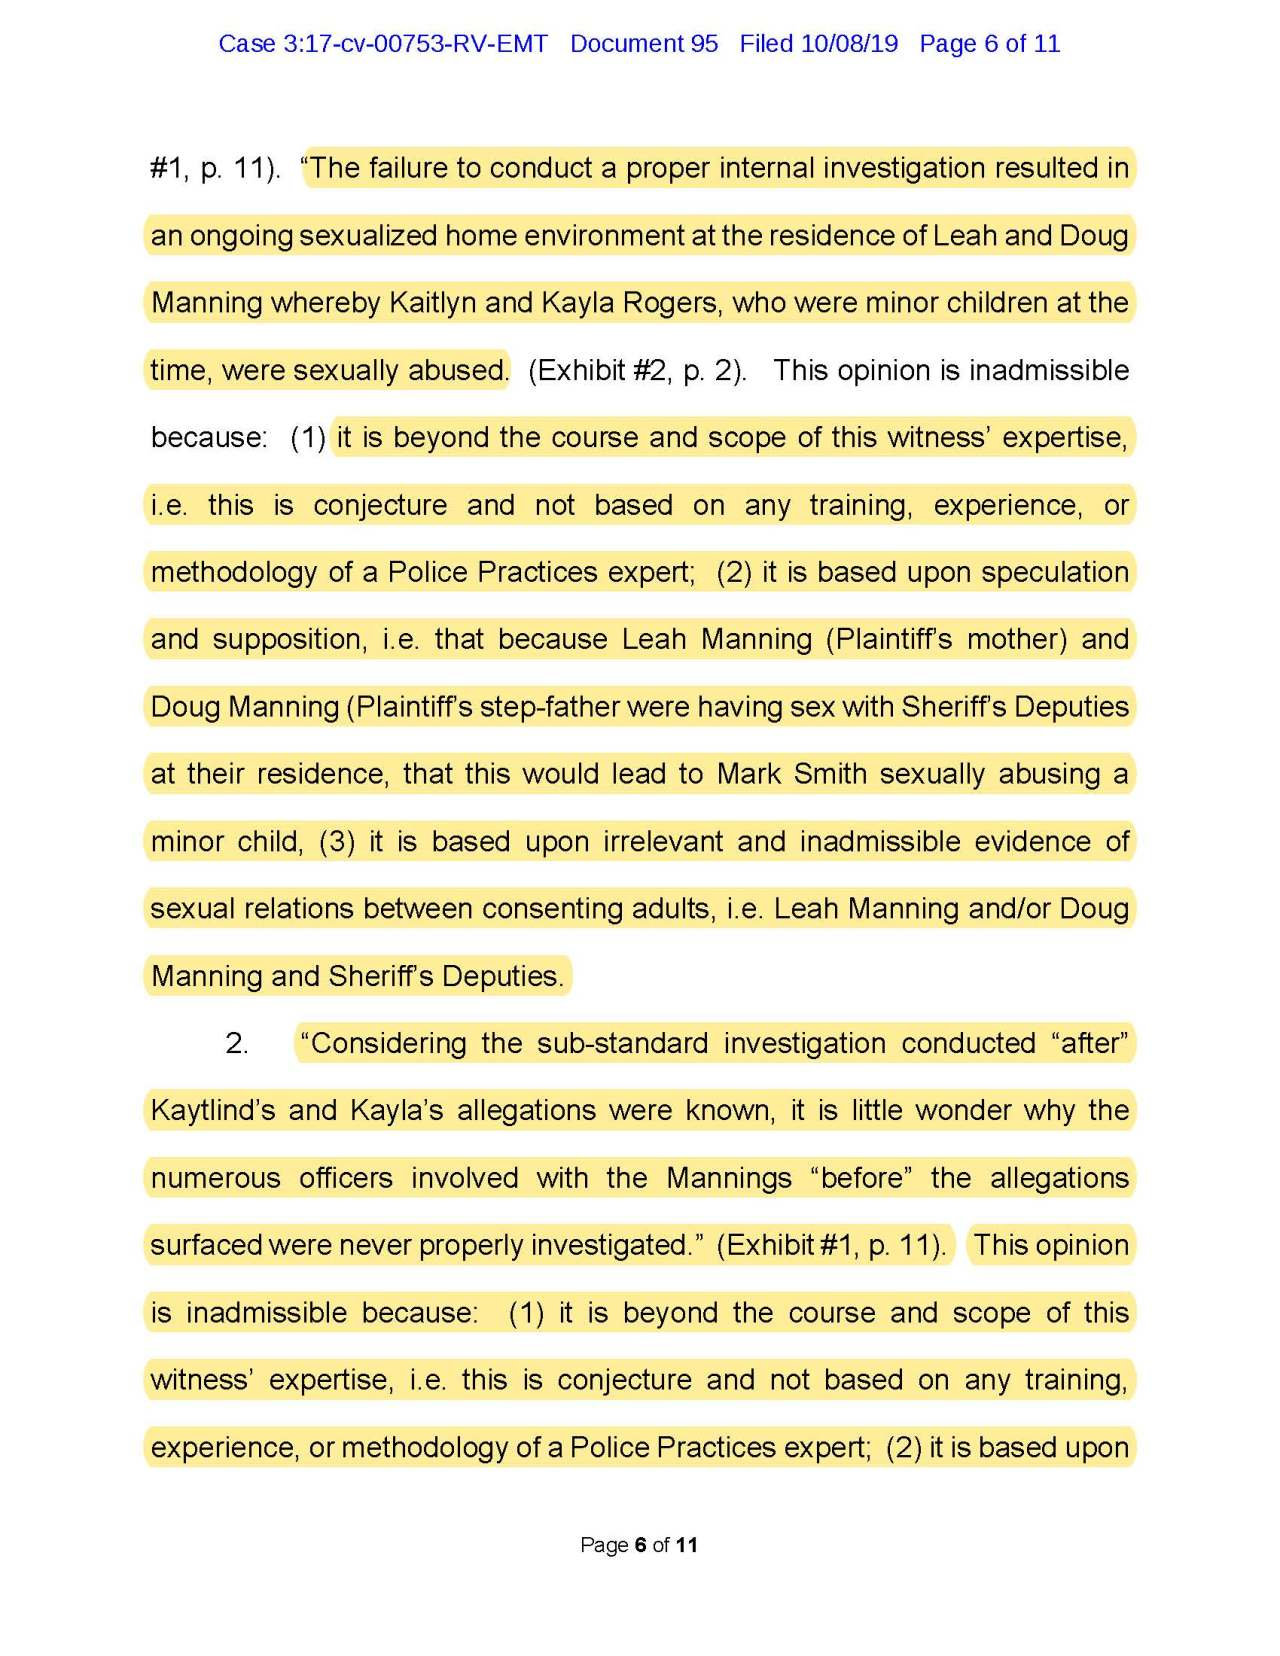 motion to exclude expert testimony_Page_06